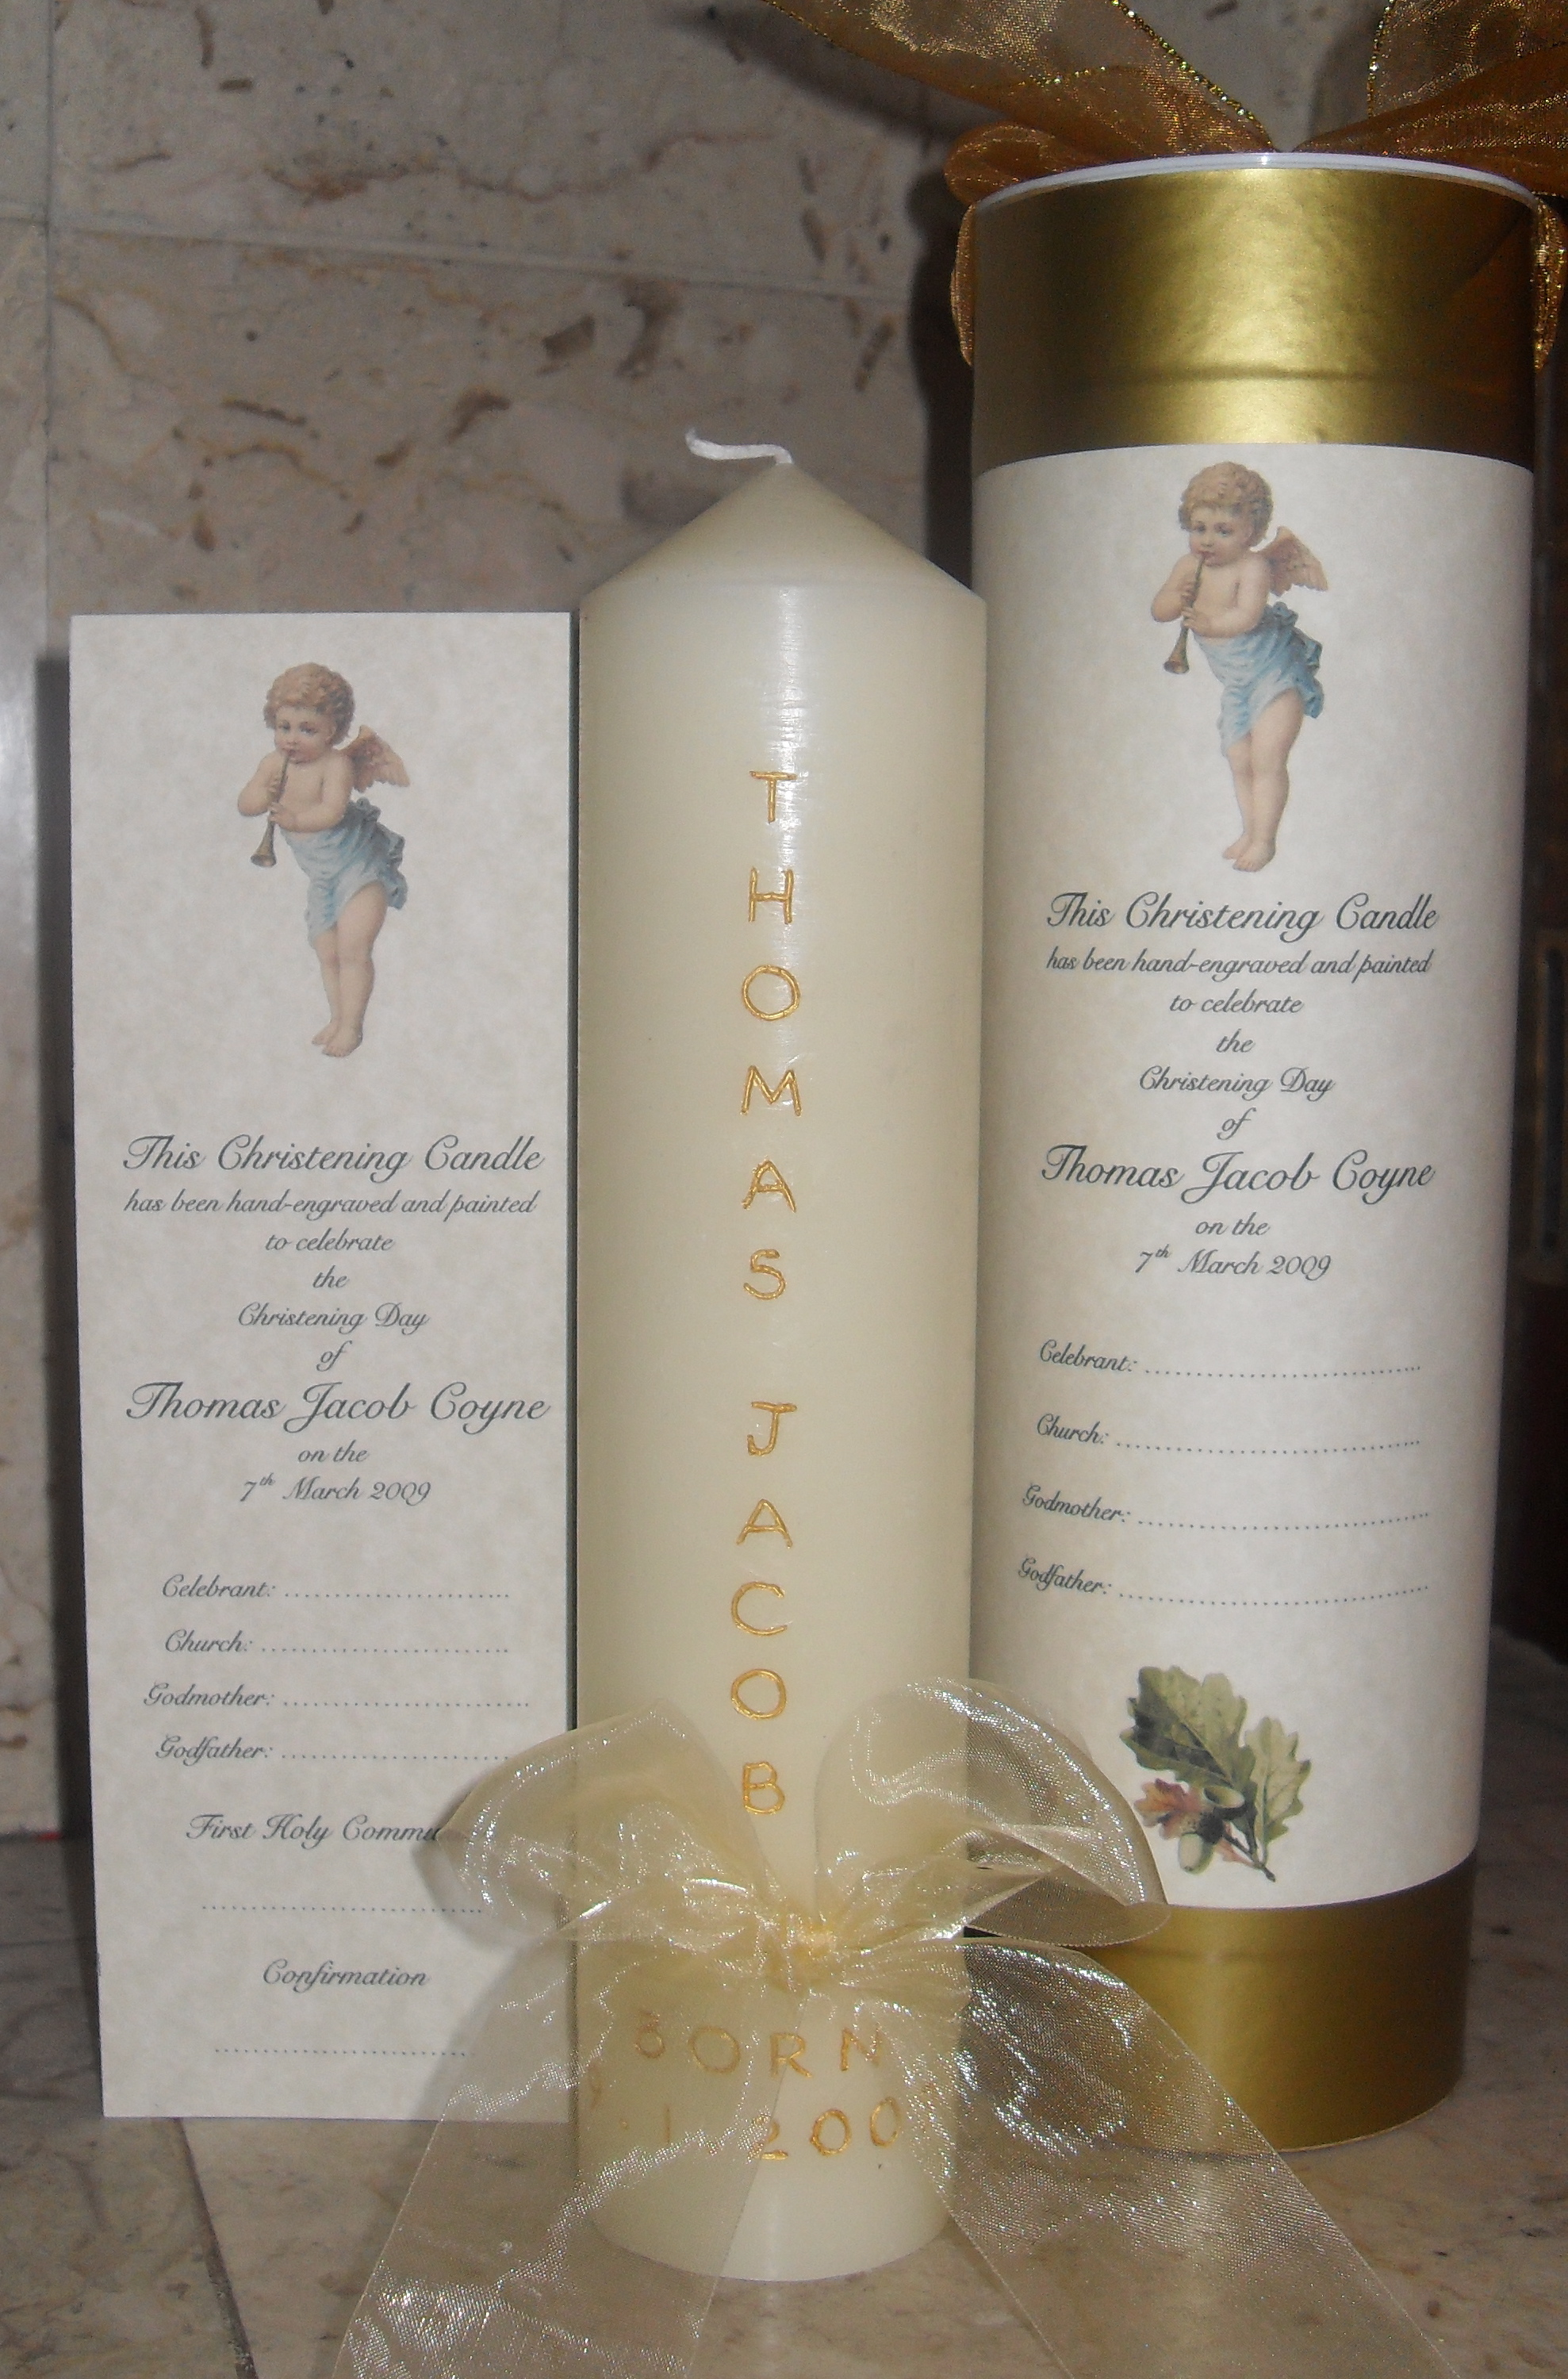 Christening Candle with presentation box and personalised card